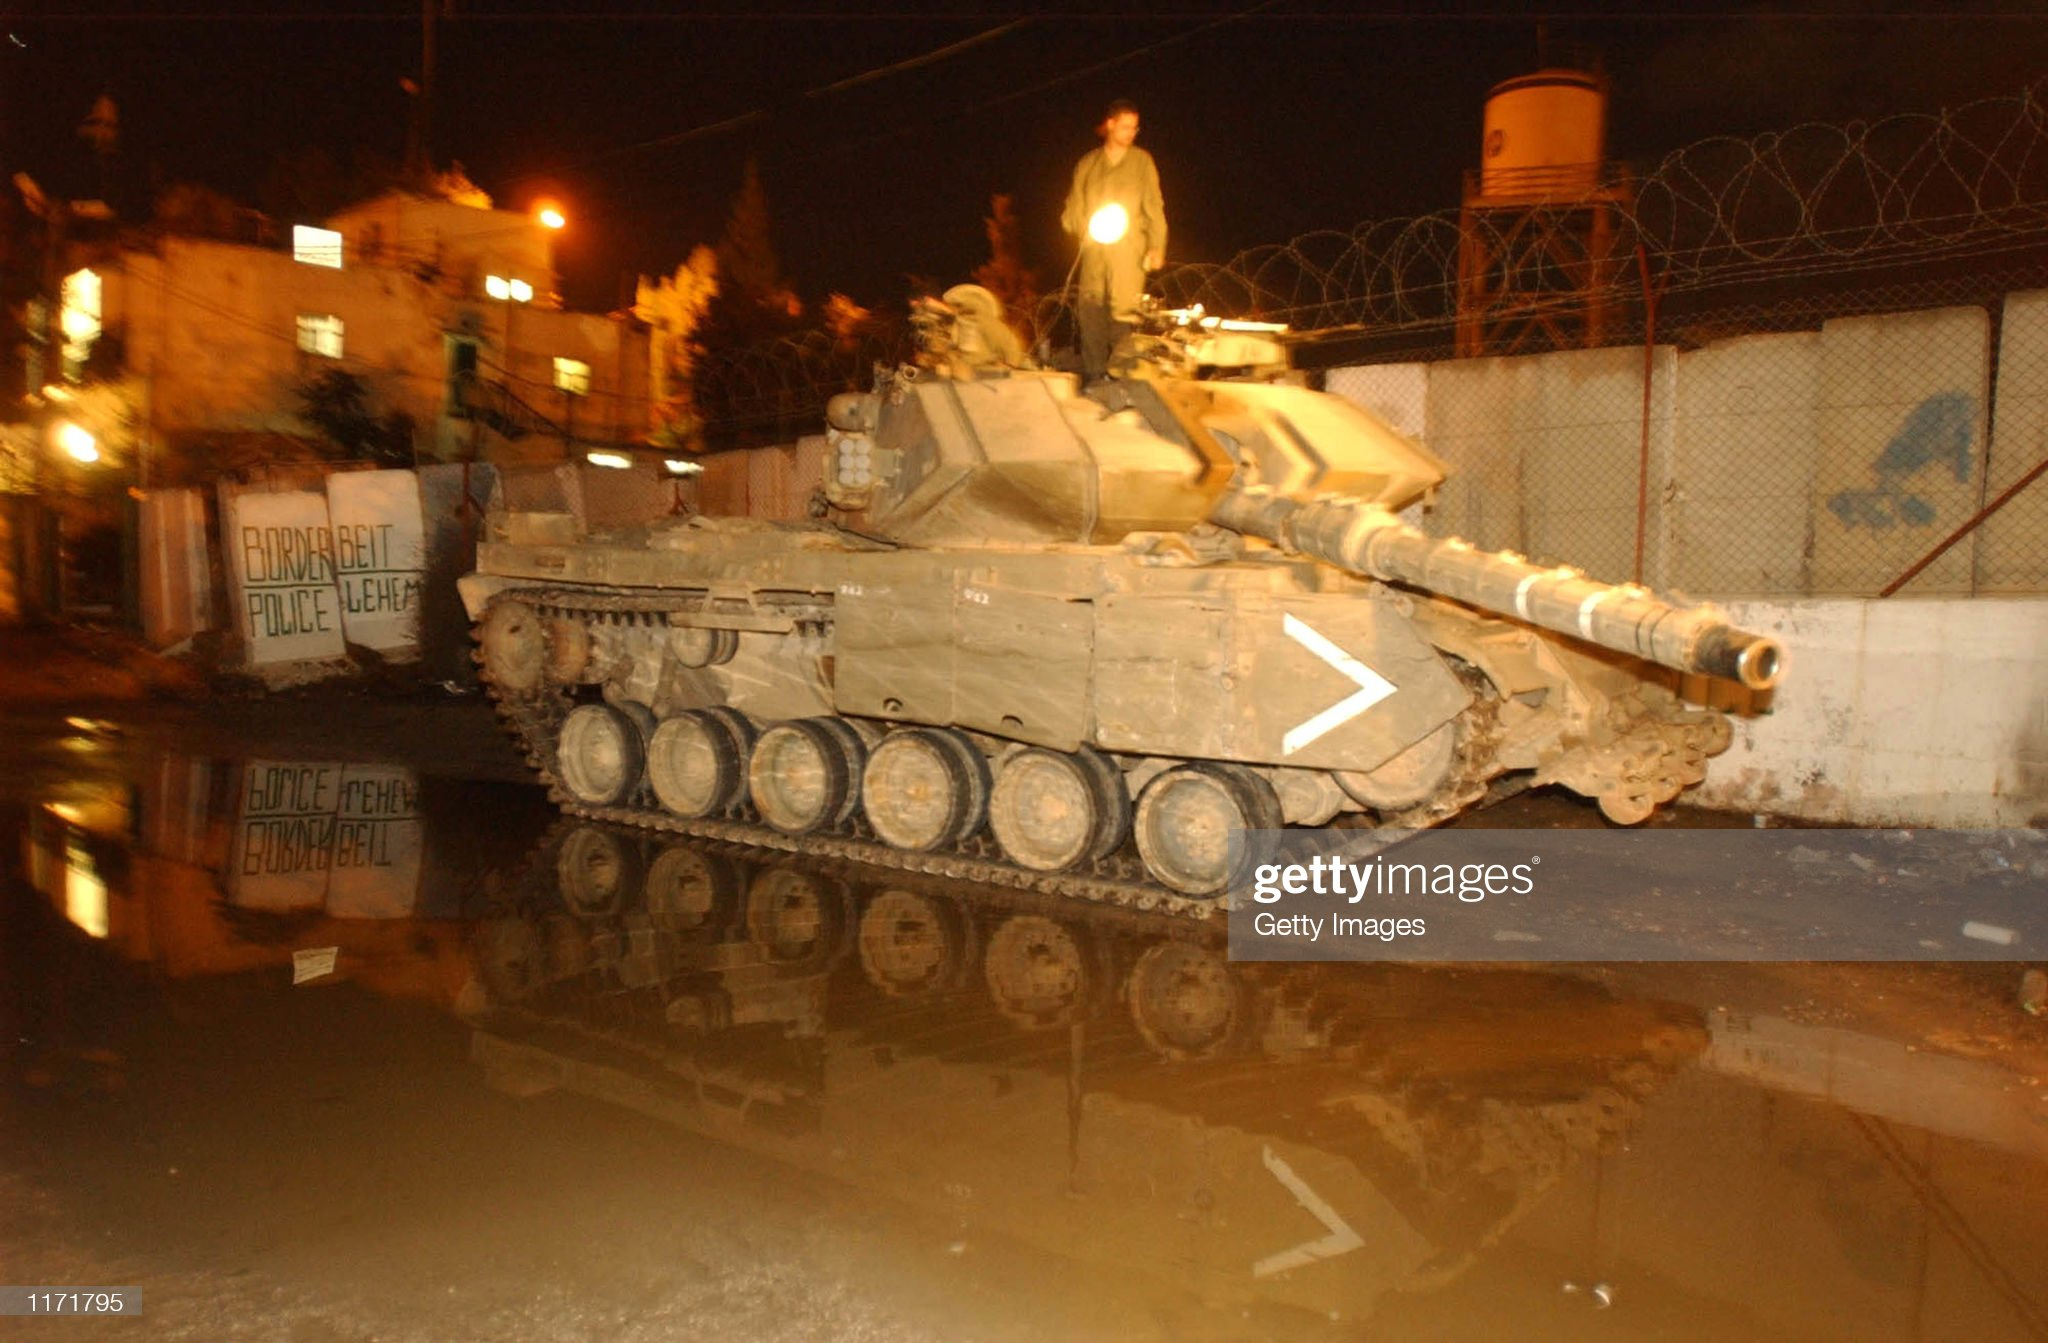 https://media.gettyimages.com/photos/an-israeli-soldier-stands-atop-a-tank-in-the-early-hours-of-october-picture-id1171795?s=2048x2048